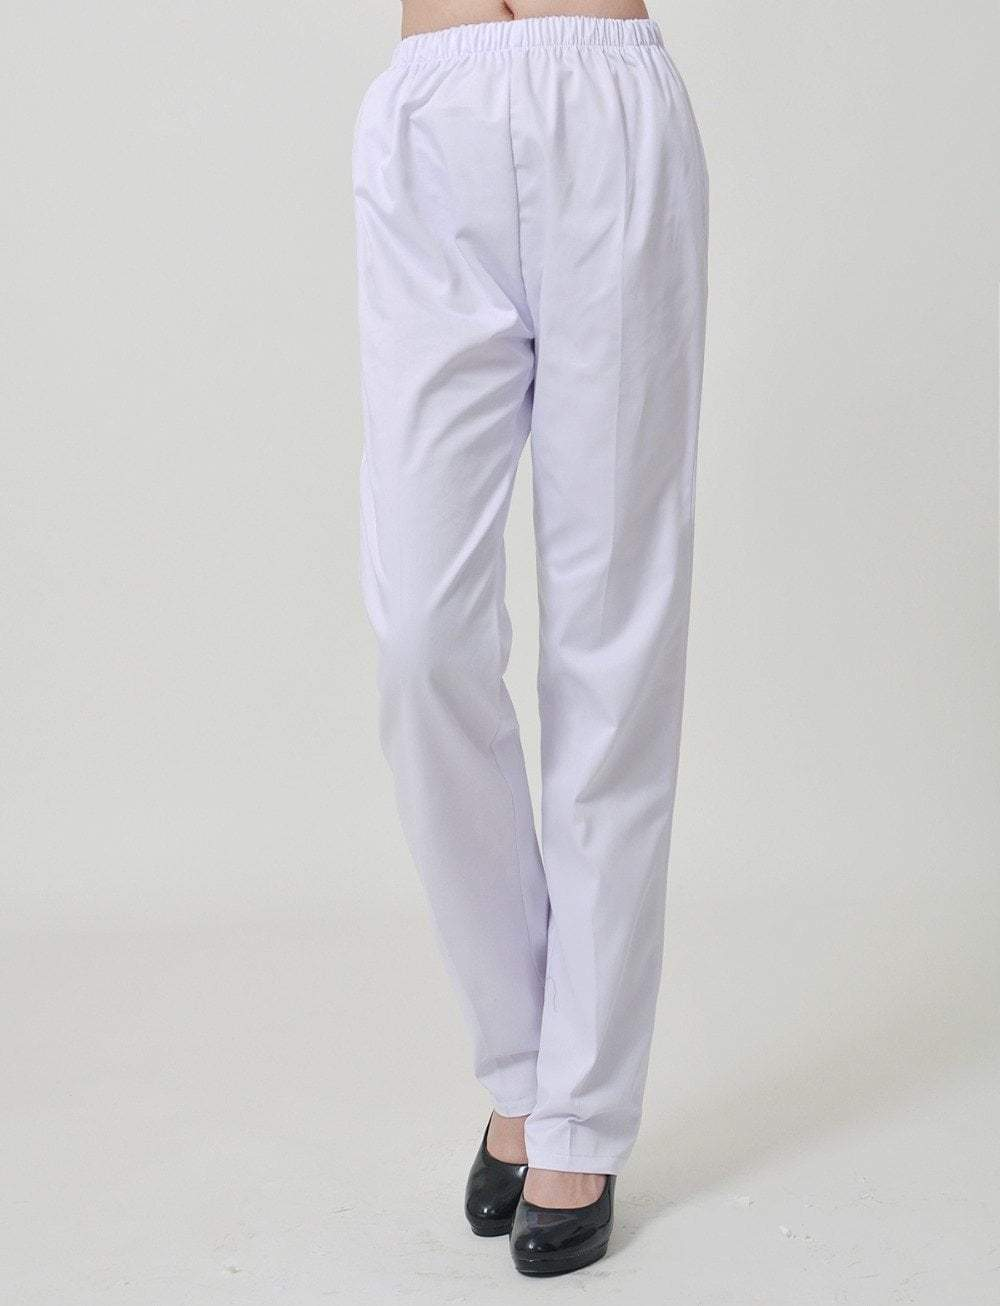 Nurse White Elastic Medical Pants - MiKlah